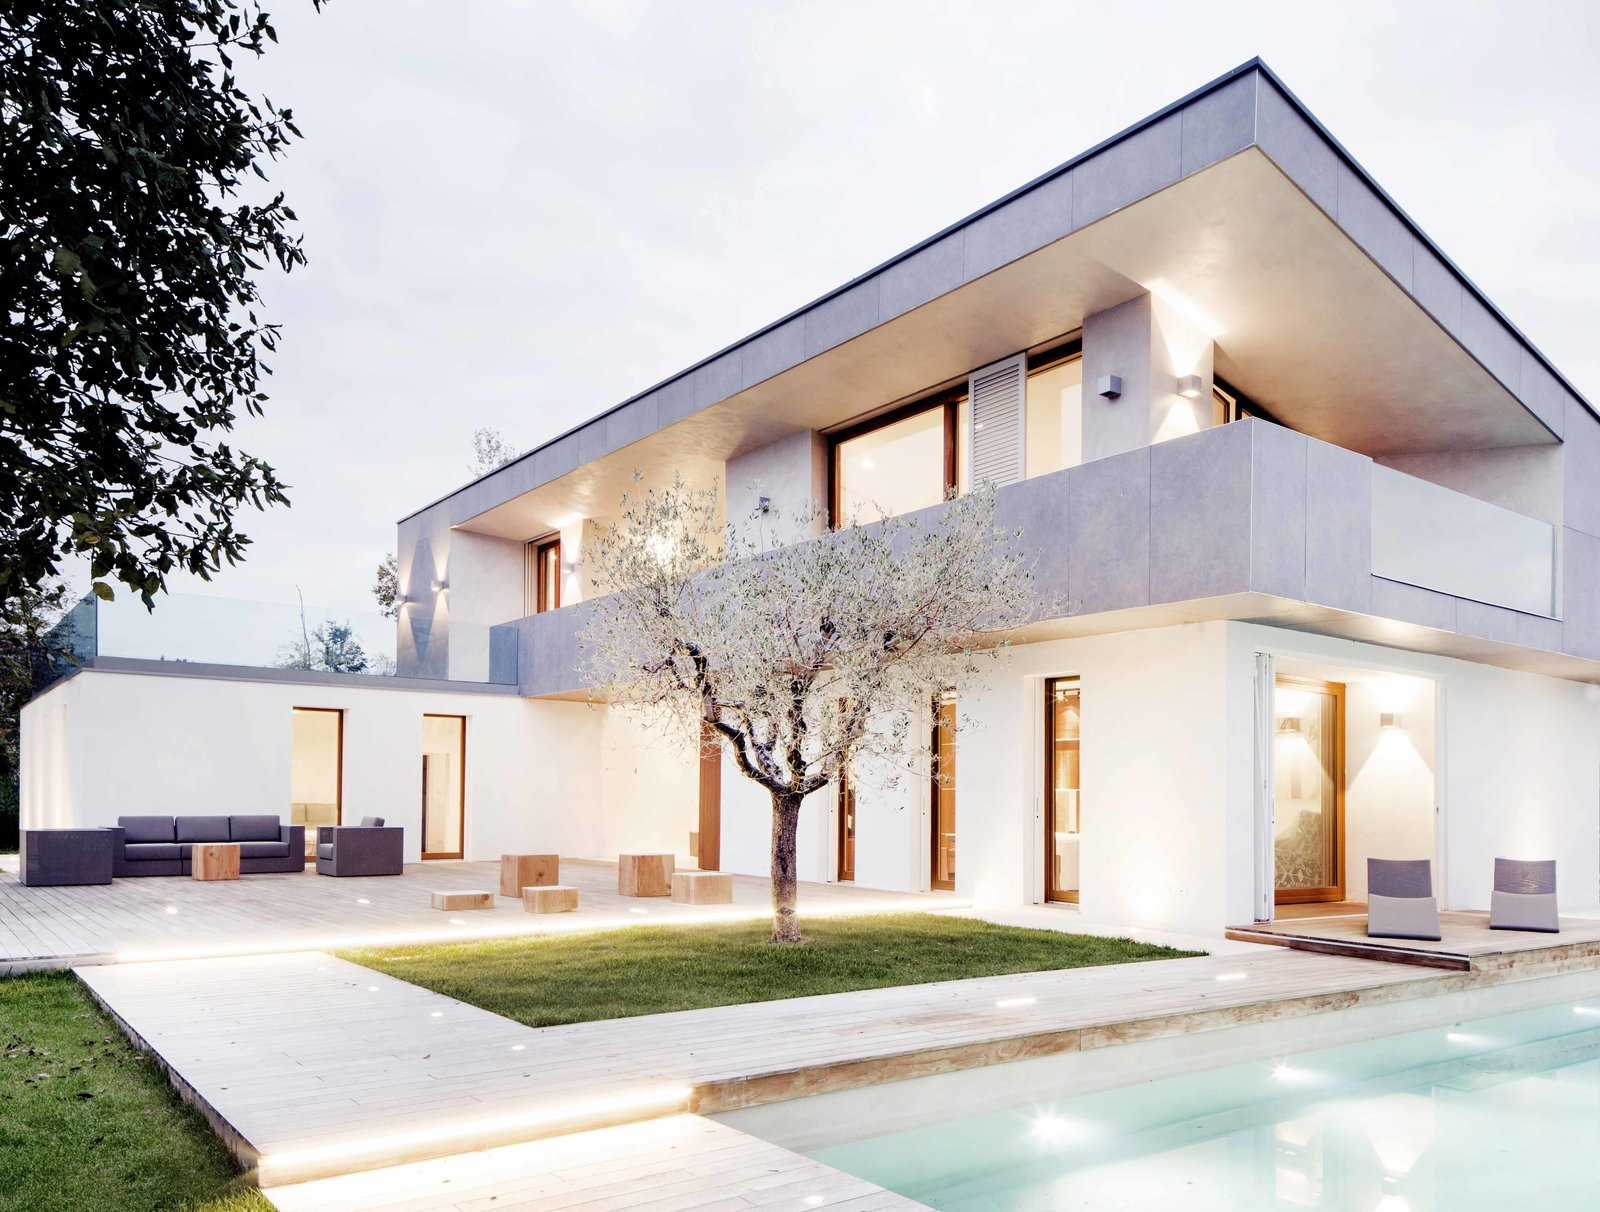 Photo 2 of 5 in Pulling off Mediterranean Modern in Tuscany - Dwell